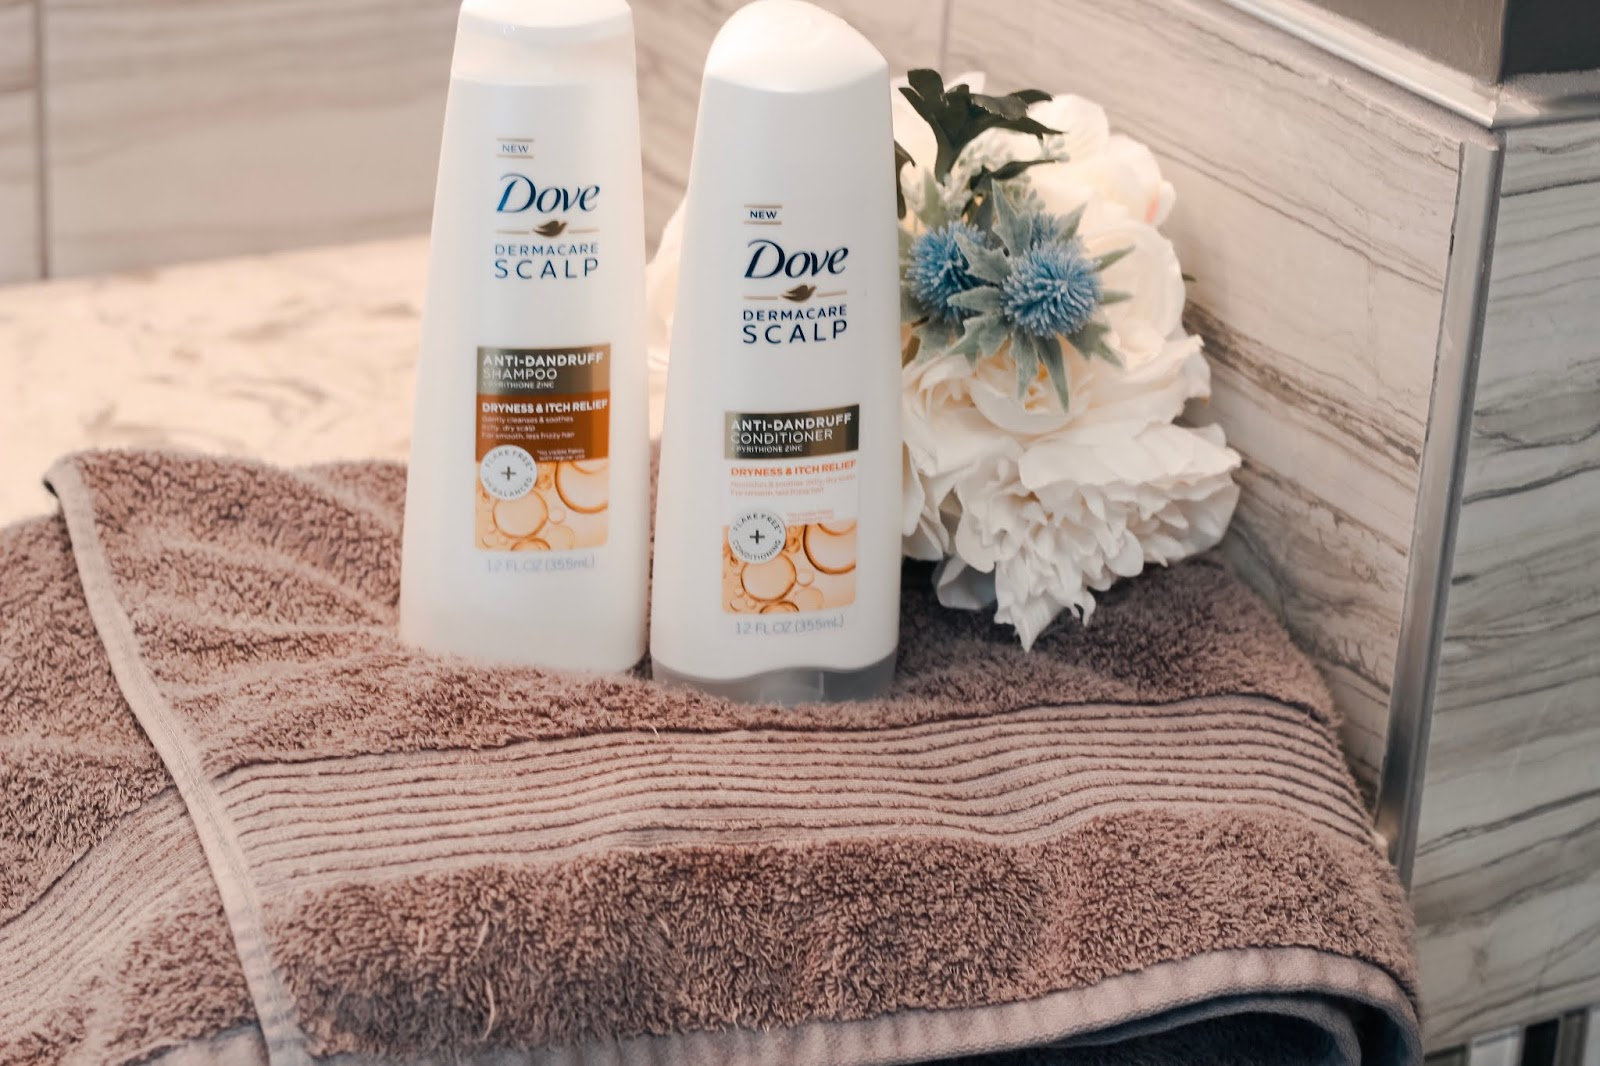 DiscoverDoveDerma, Dove, hair products, natural hair, dandruff, shampoo, conditioner, dove hair, dove partner, mom blogger, beauty blogger, walmart, natural curls